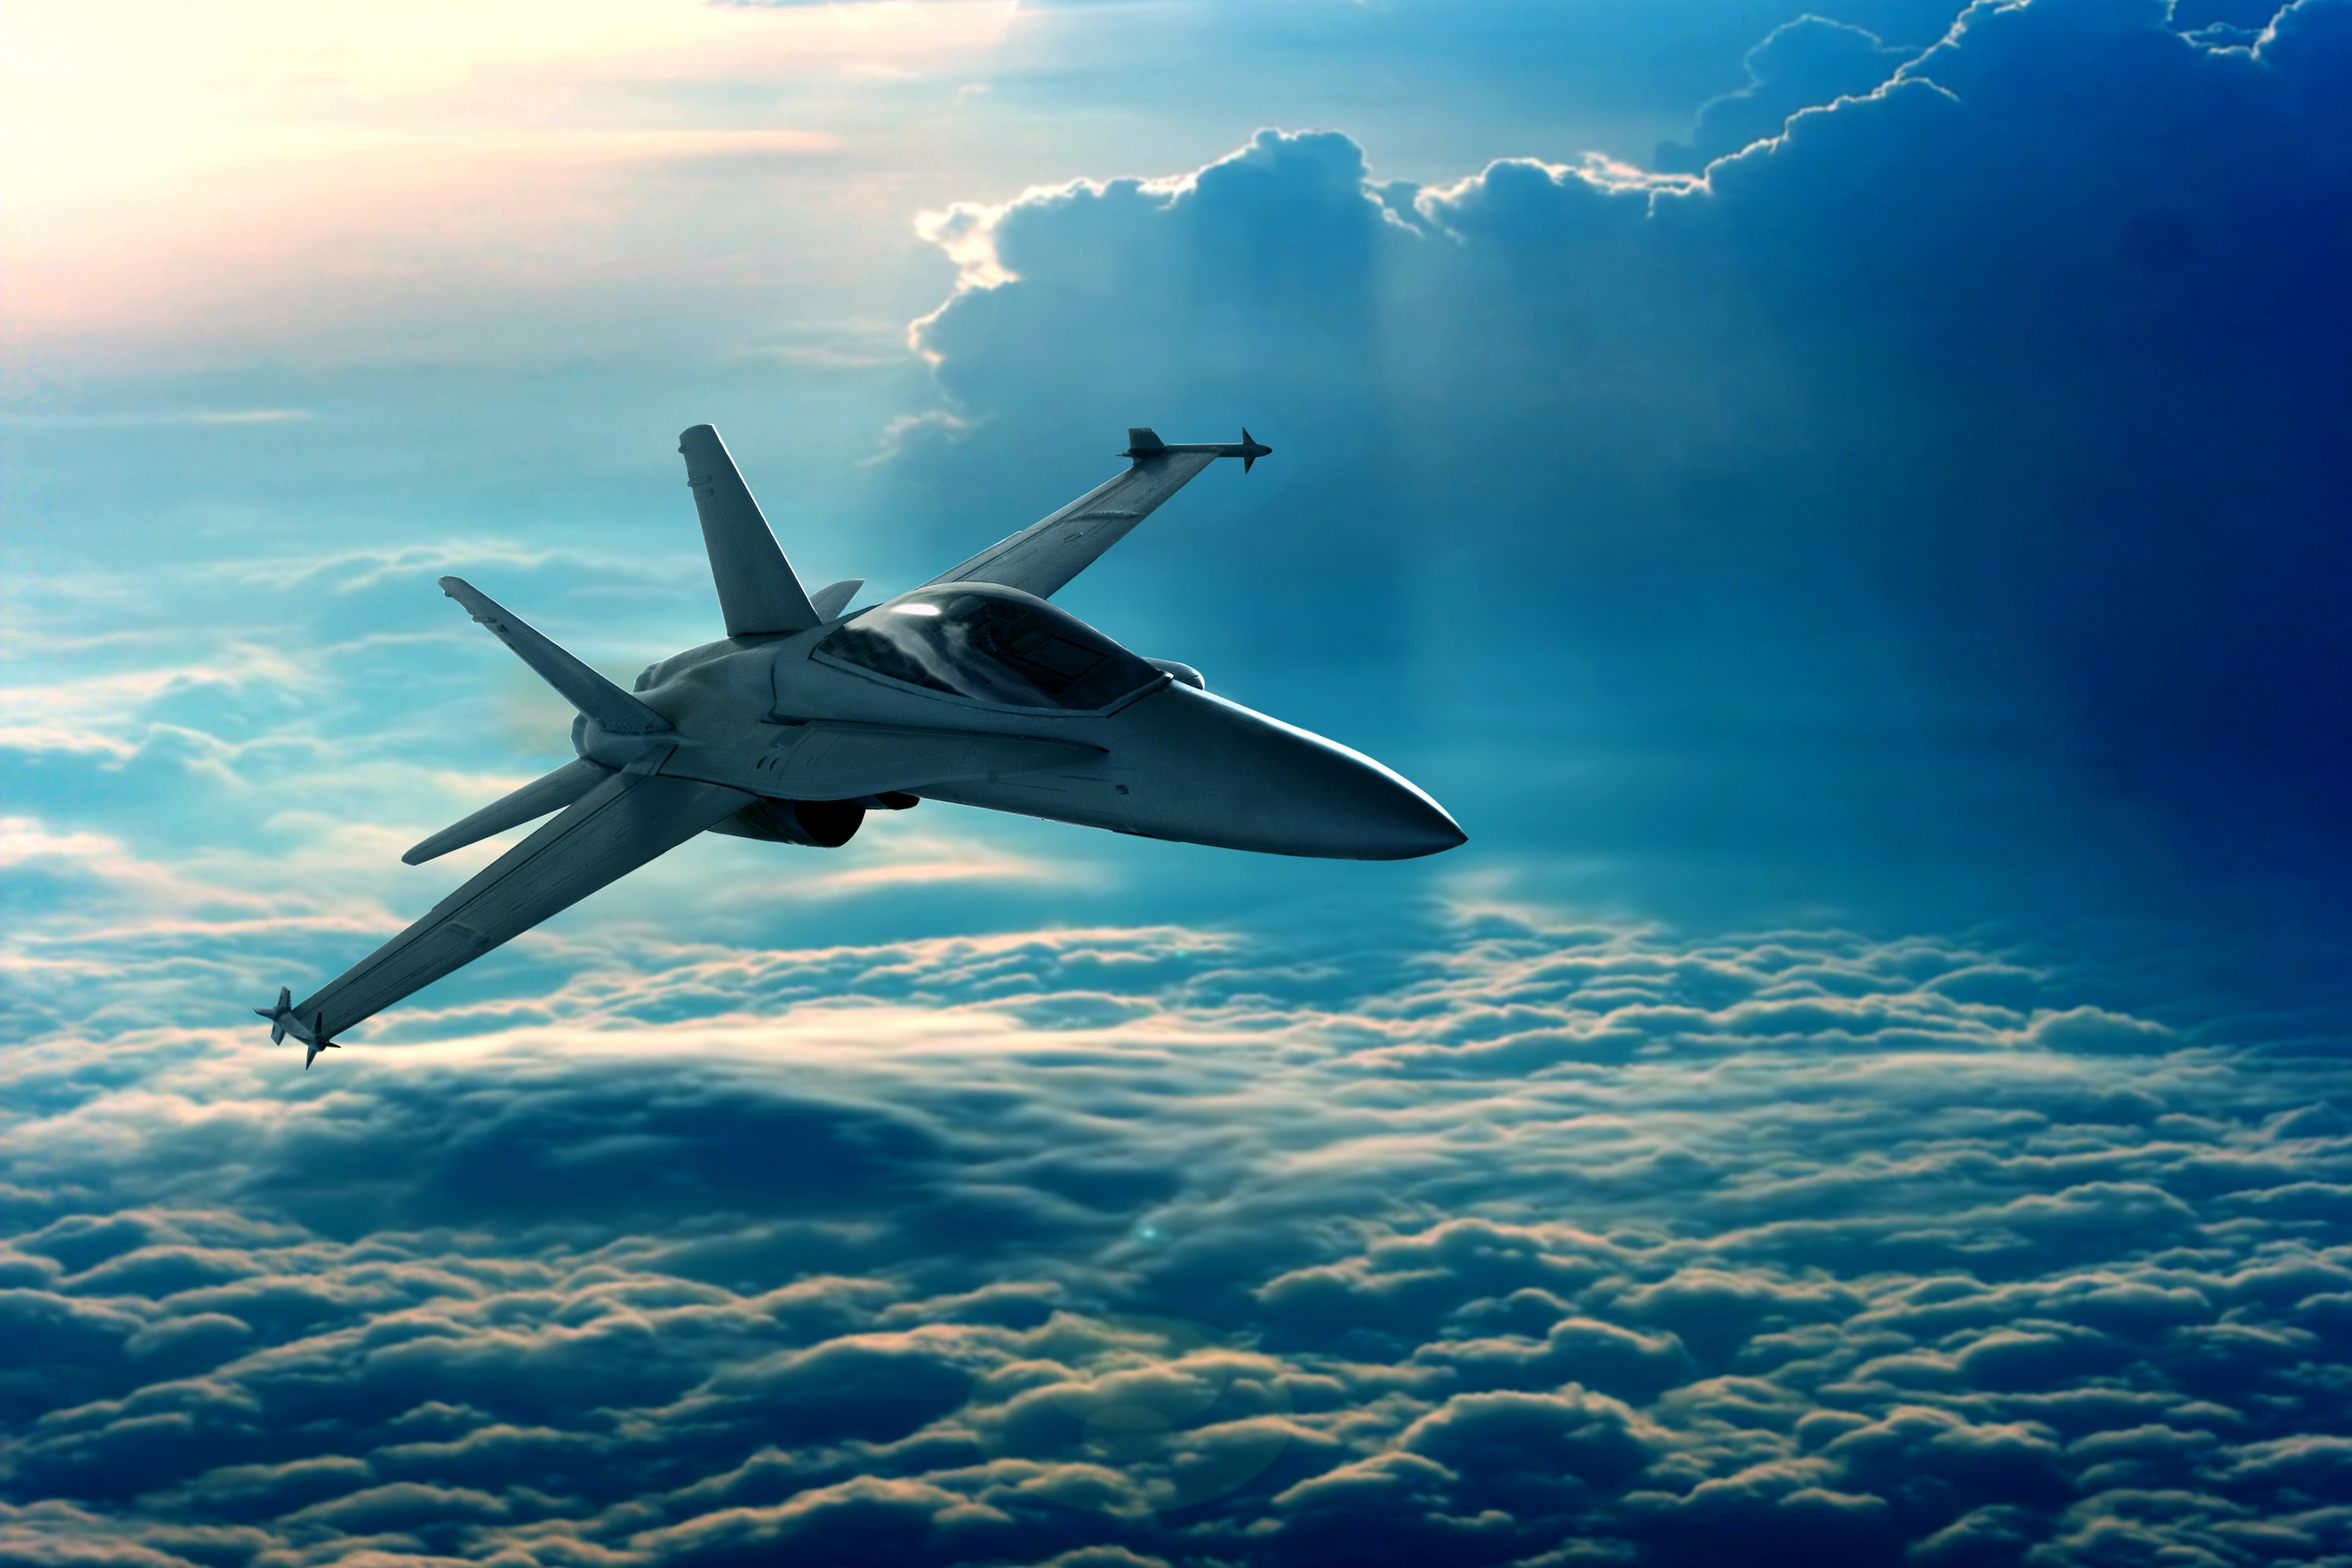 indonesian defense strategy military aircraft acquisition Russia and indonesia finalized a deal for the purchase of 11 sukhoi su-35  multirole fighter jets, interfax reported citing a military source.